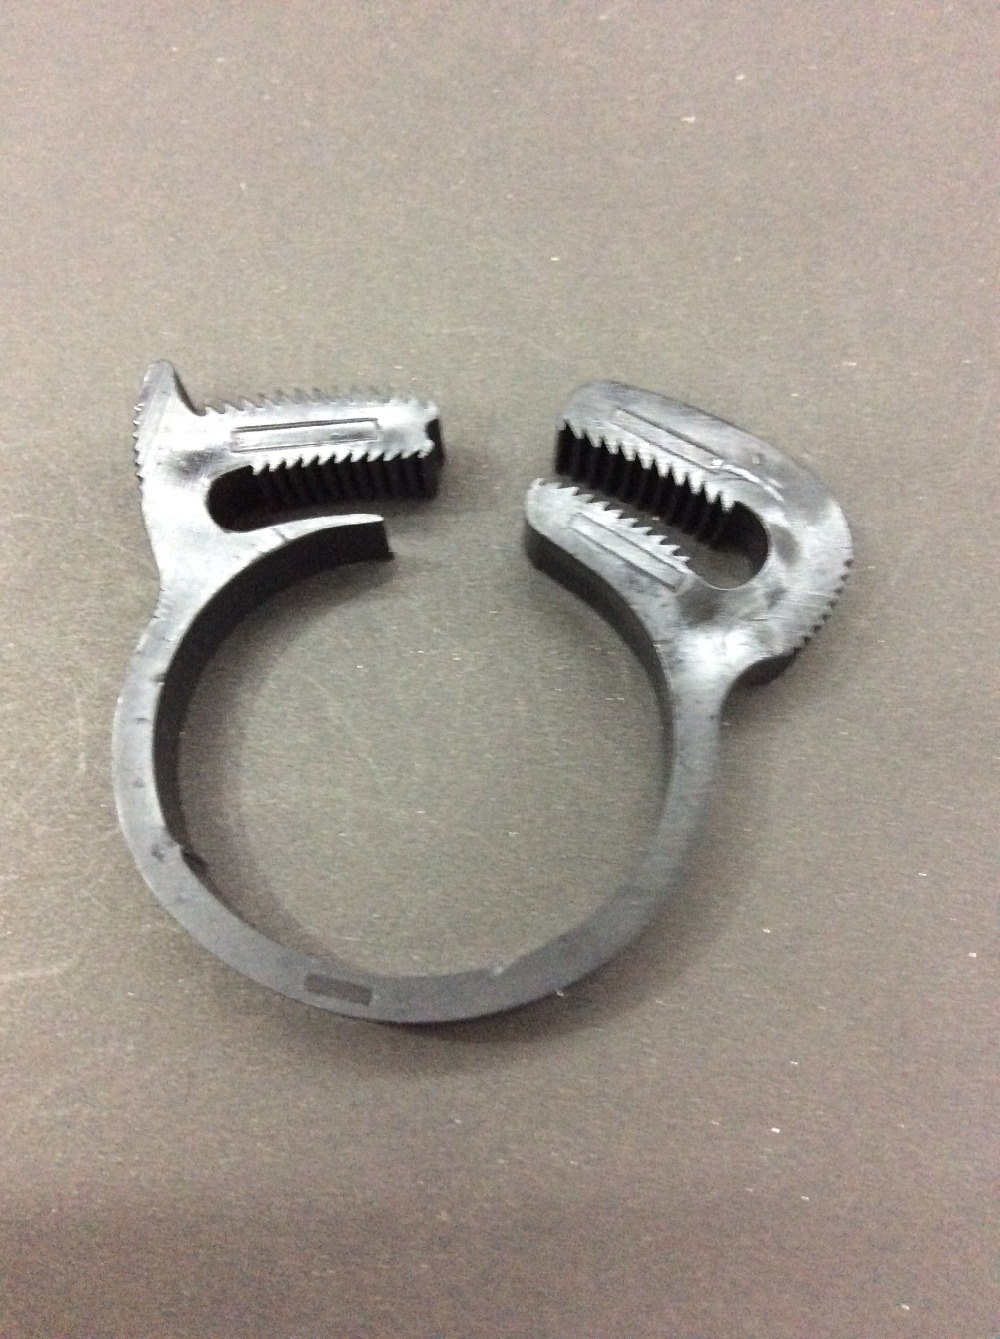 Manufacture plastic pipe clamps clips for 12.2-12.8mm tube outer diameter(China (Mainland))